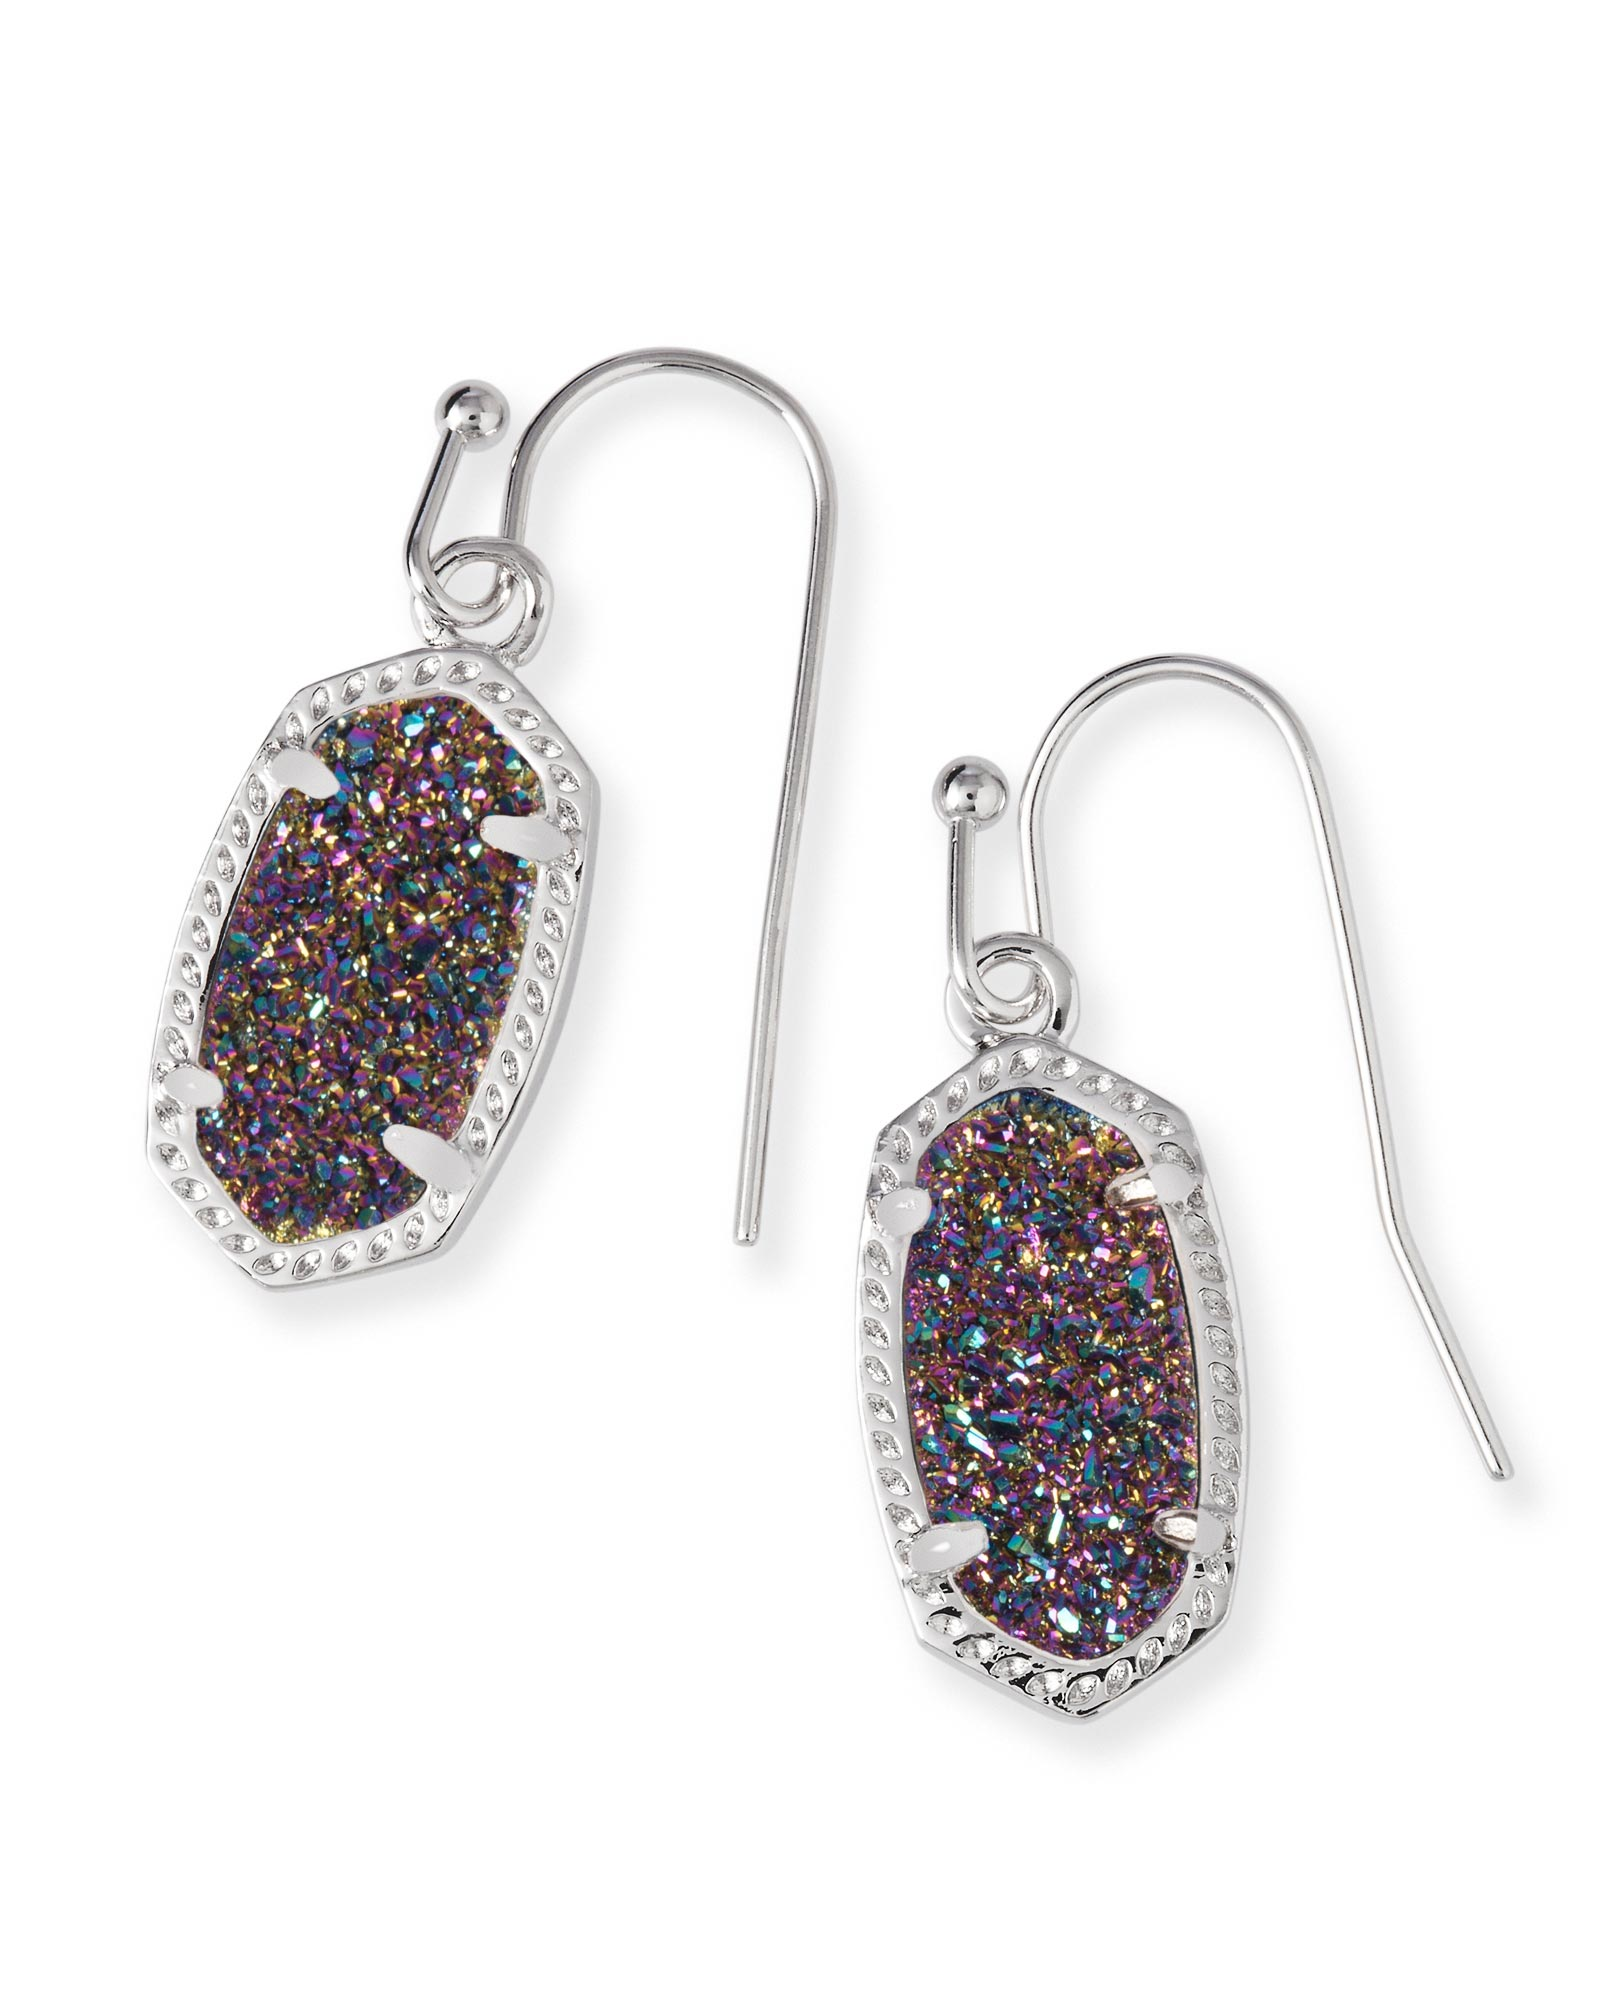 Lee Silver Drop Earrings in Multi Color Drusy